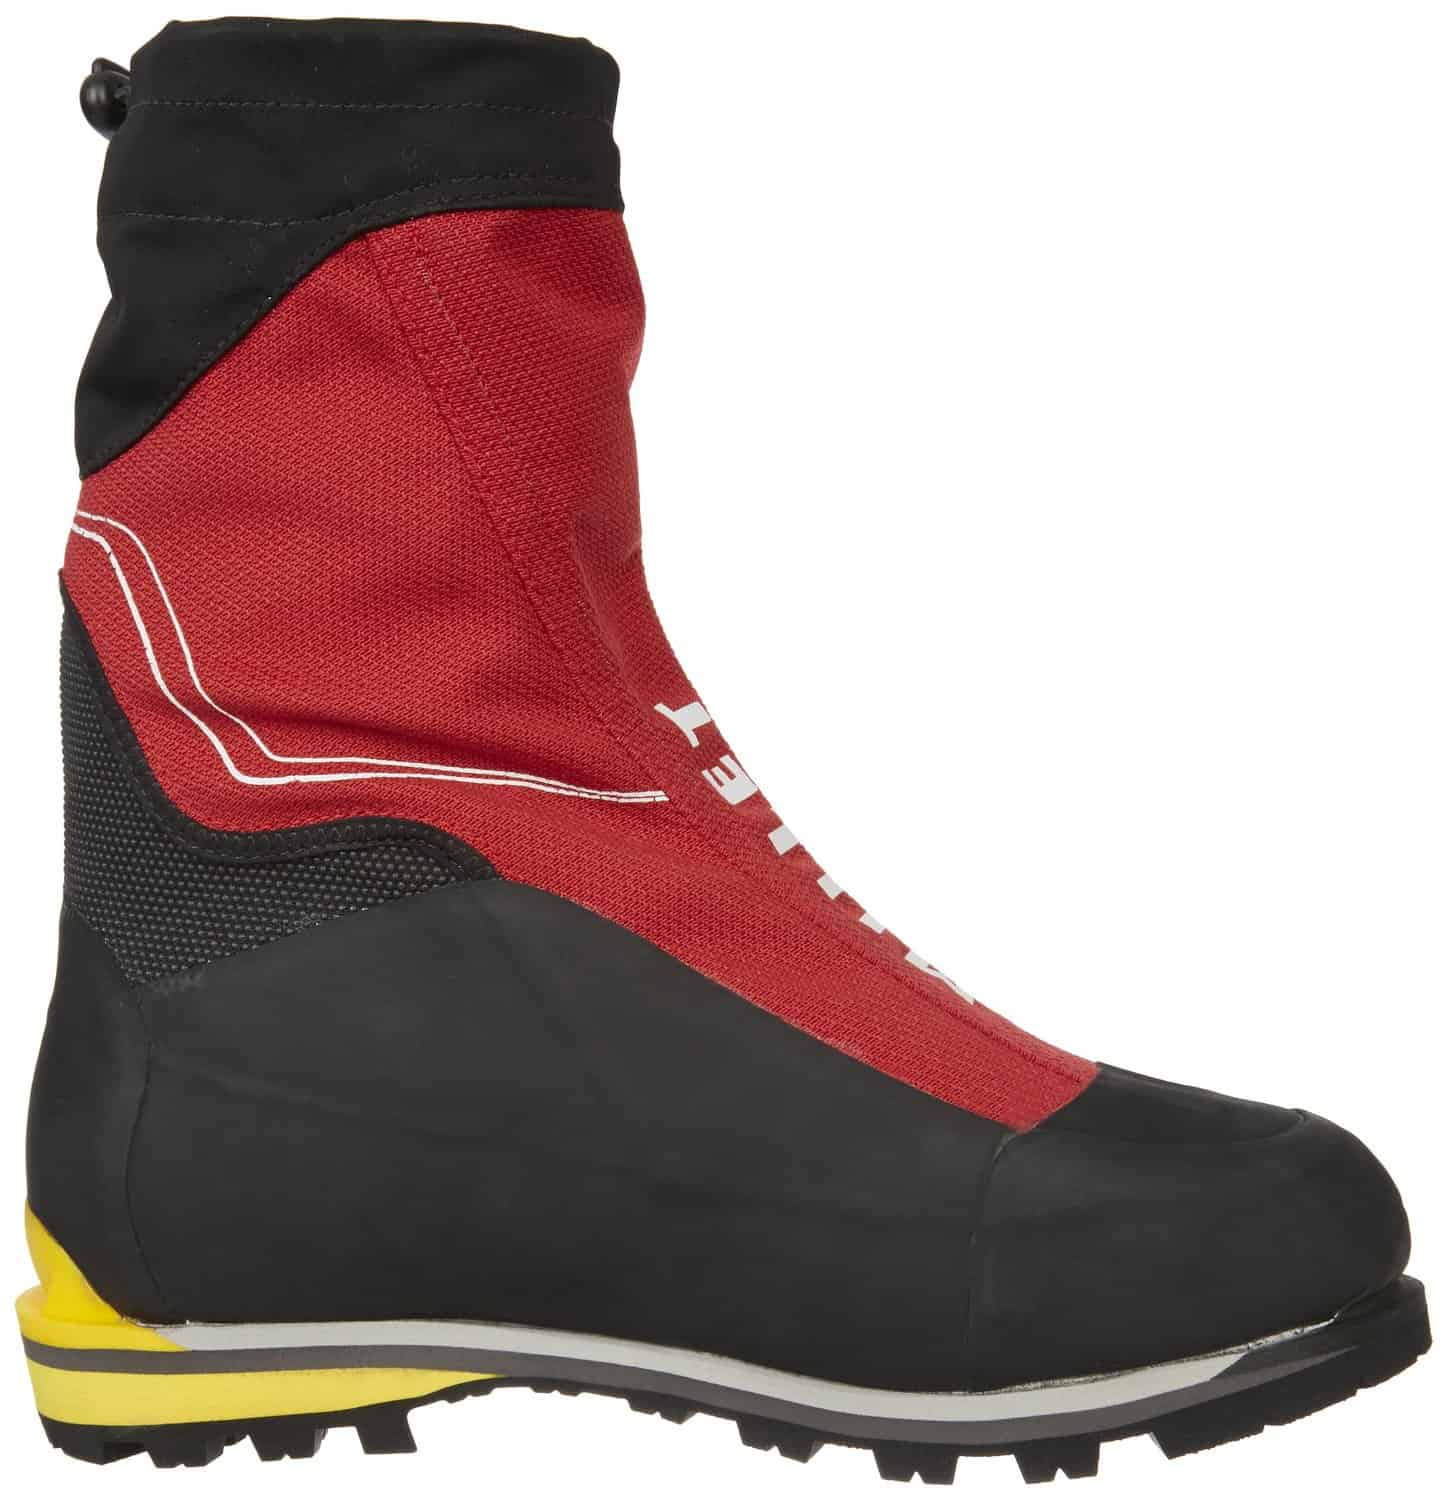 Millet Davai Mountaineering Boot Review